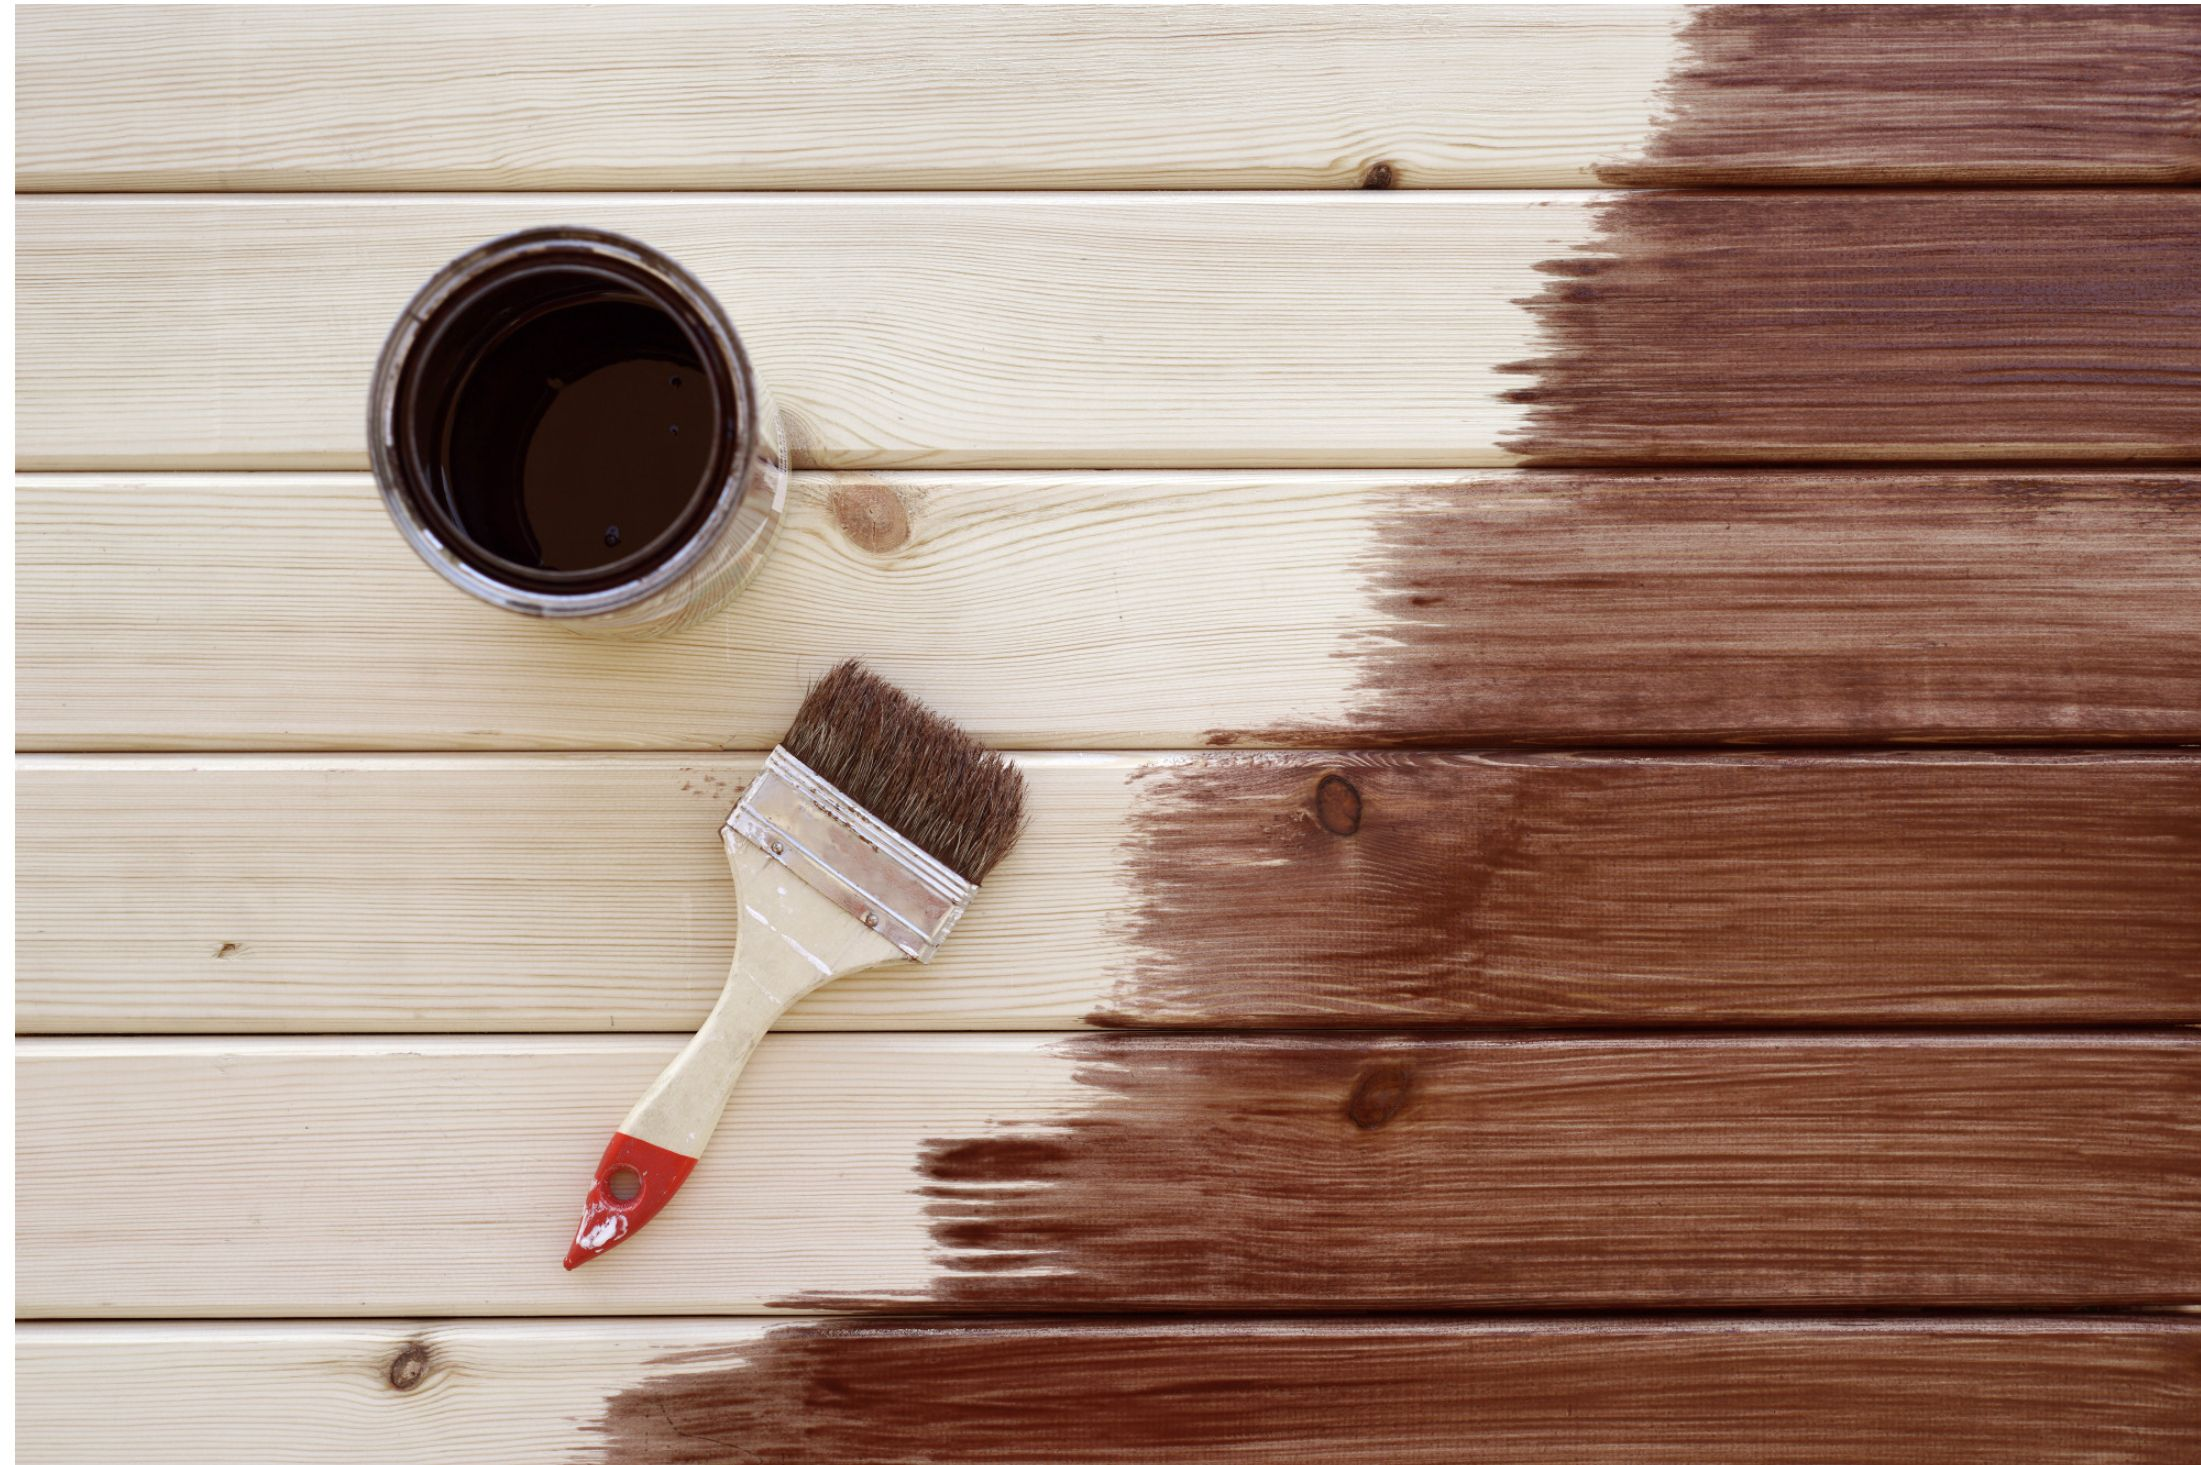 FENCE STAINER: It takes meticuolous planning to paint a fence or a garden table